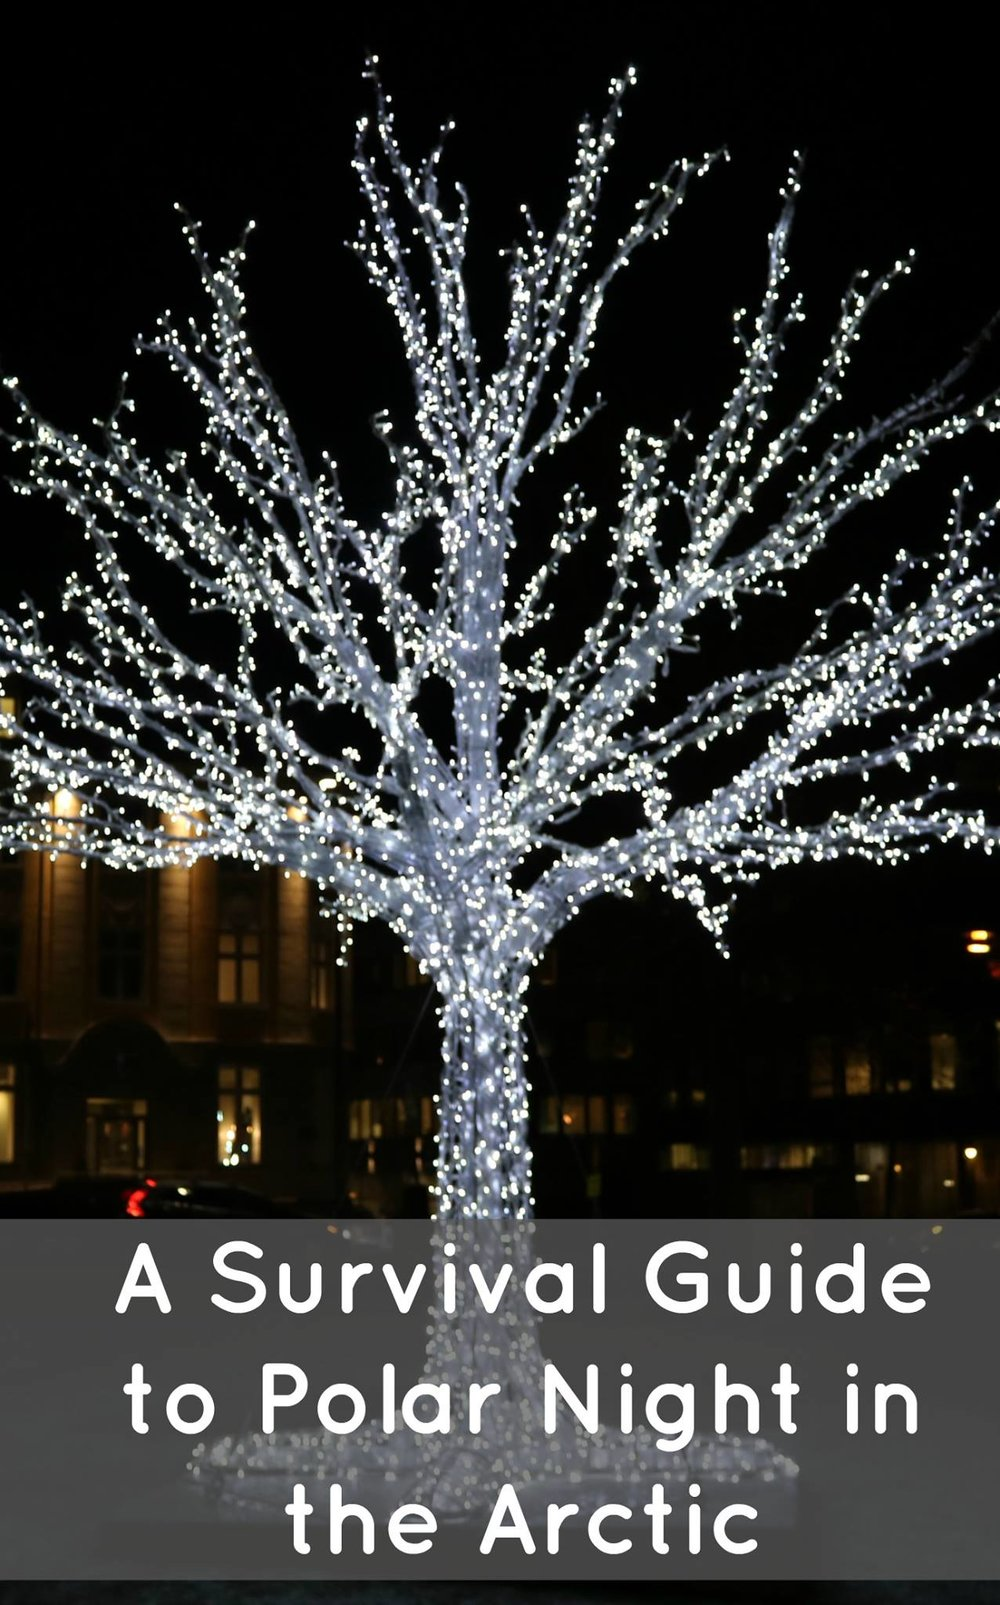 survive polar night guide pinterest pic.jpg